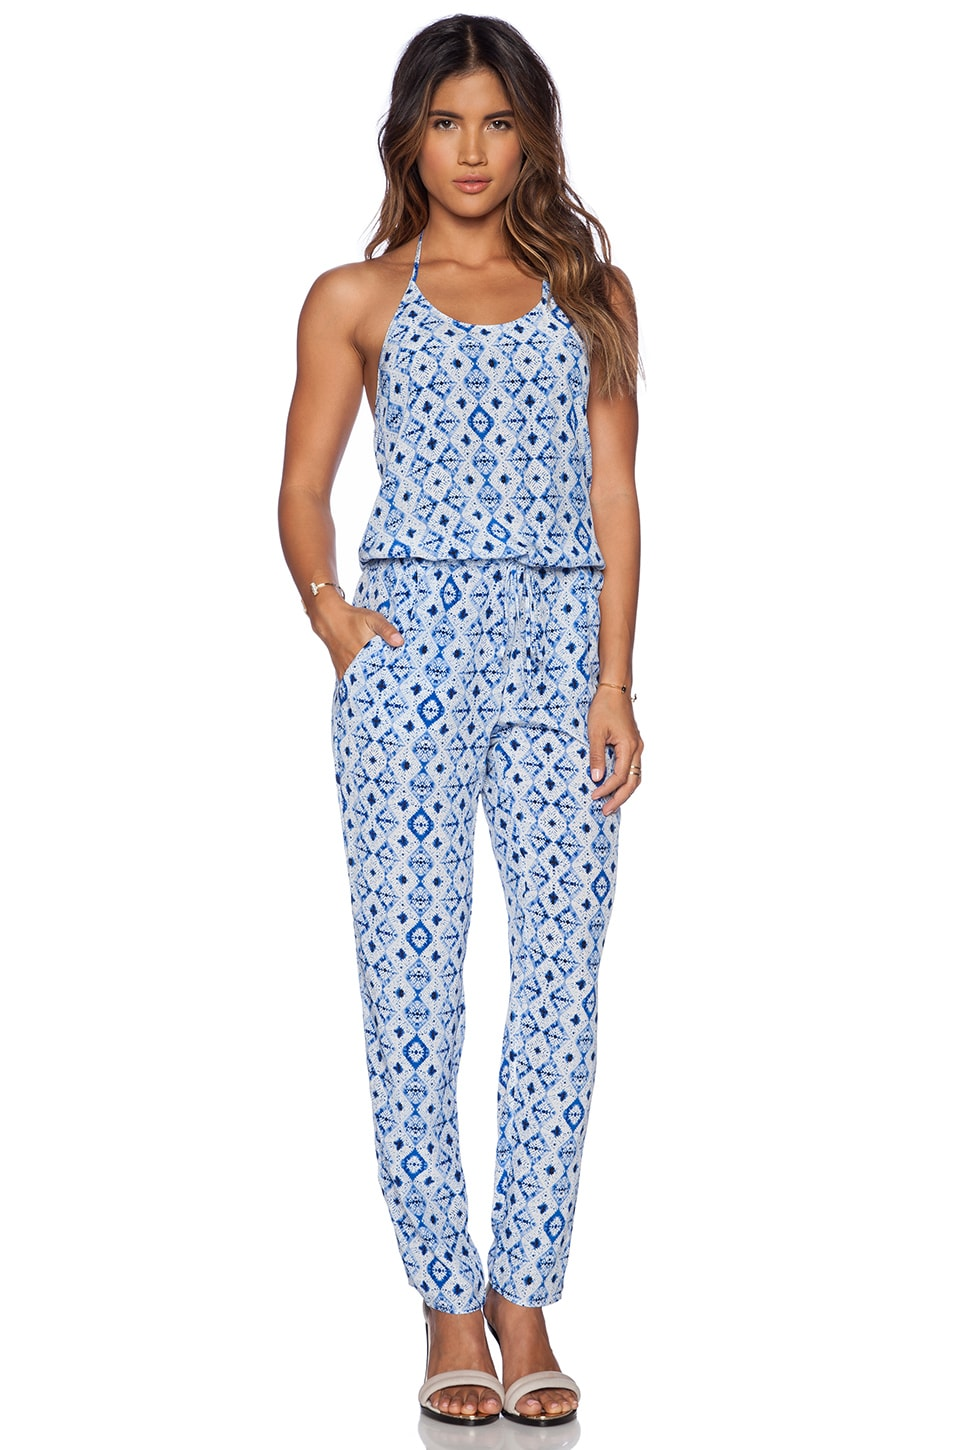 Rory Beca Ludo Jumpsuit in Aces